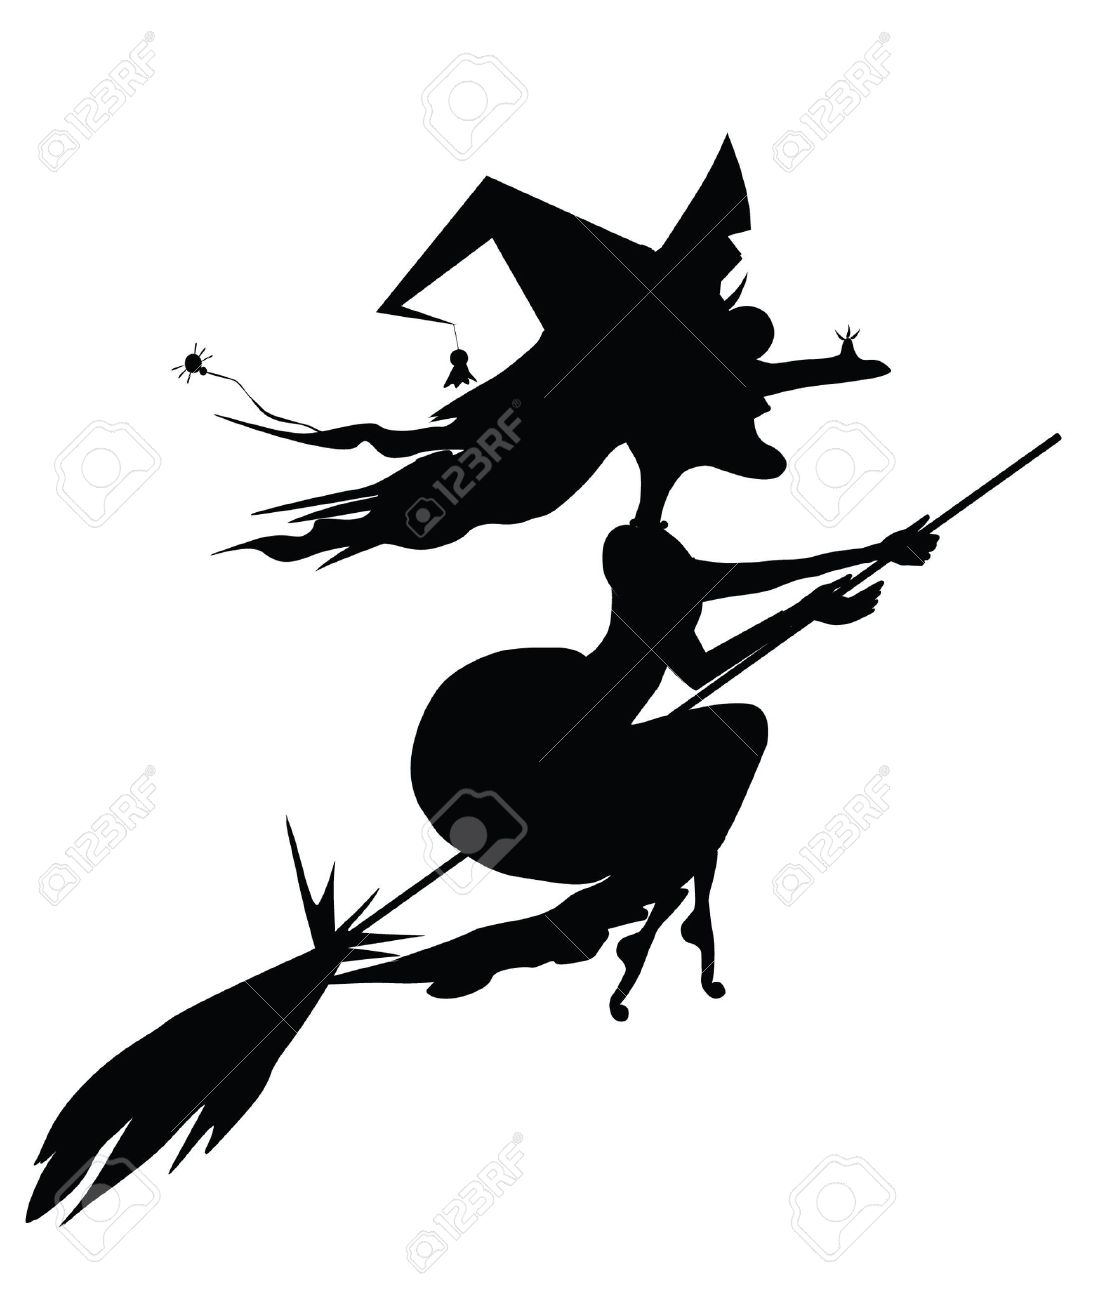 witches broom silhouette clipart 20 free Cliparts   Download